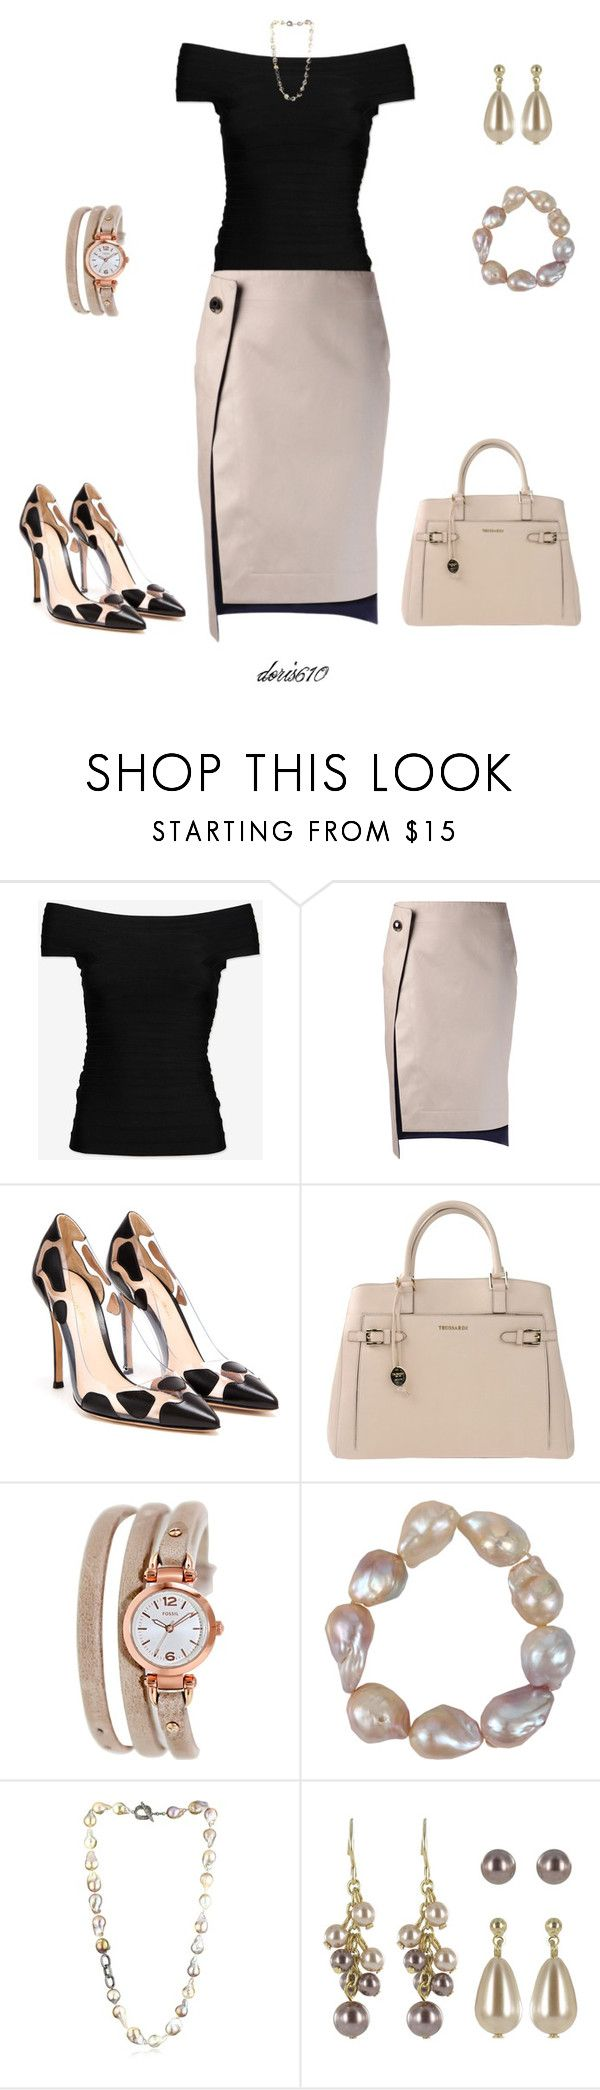 """Untitled #976"" by doris610 ❤ liked on Polyvore featuring Hervé Léger, Atto, Gianvito Rossi, Trussardi, FOSSIL, Jordan Alexander and Roman"